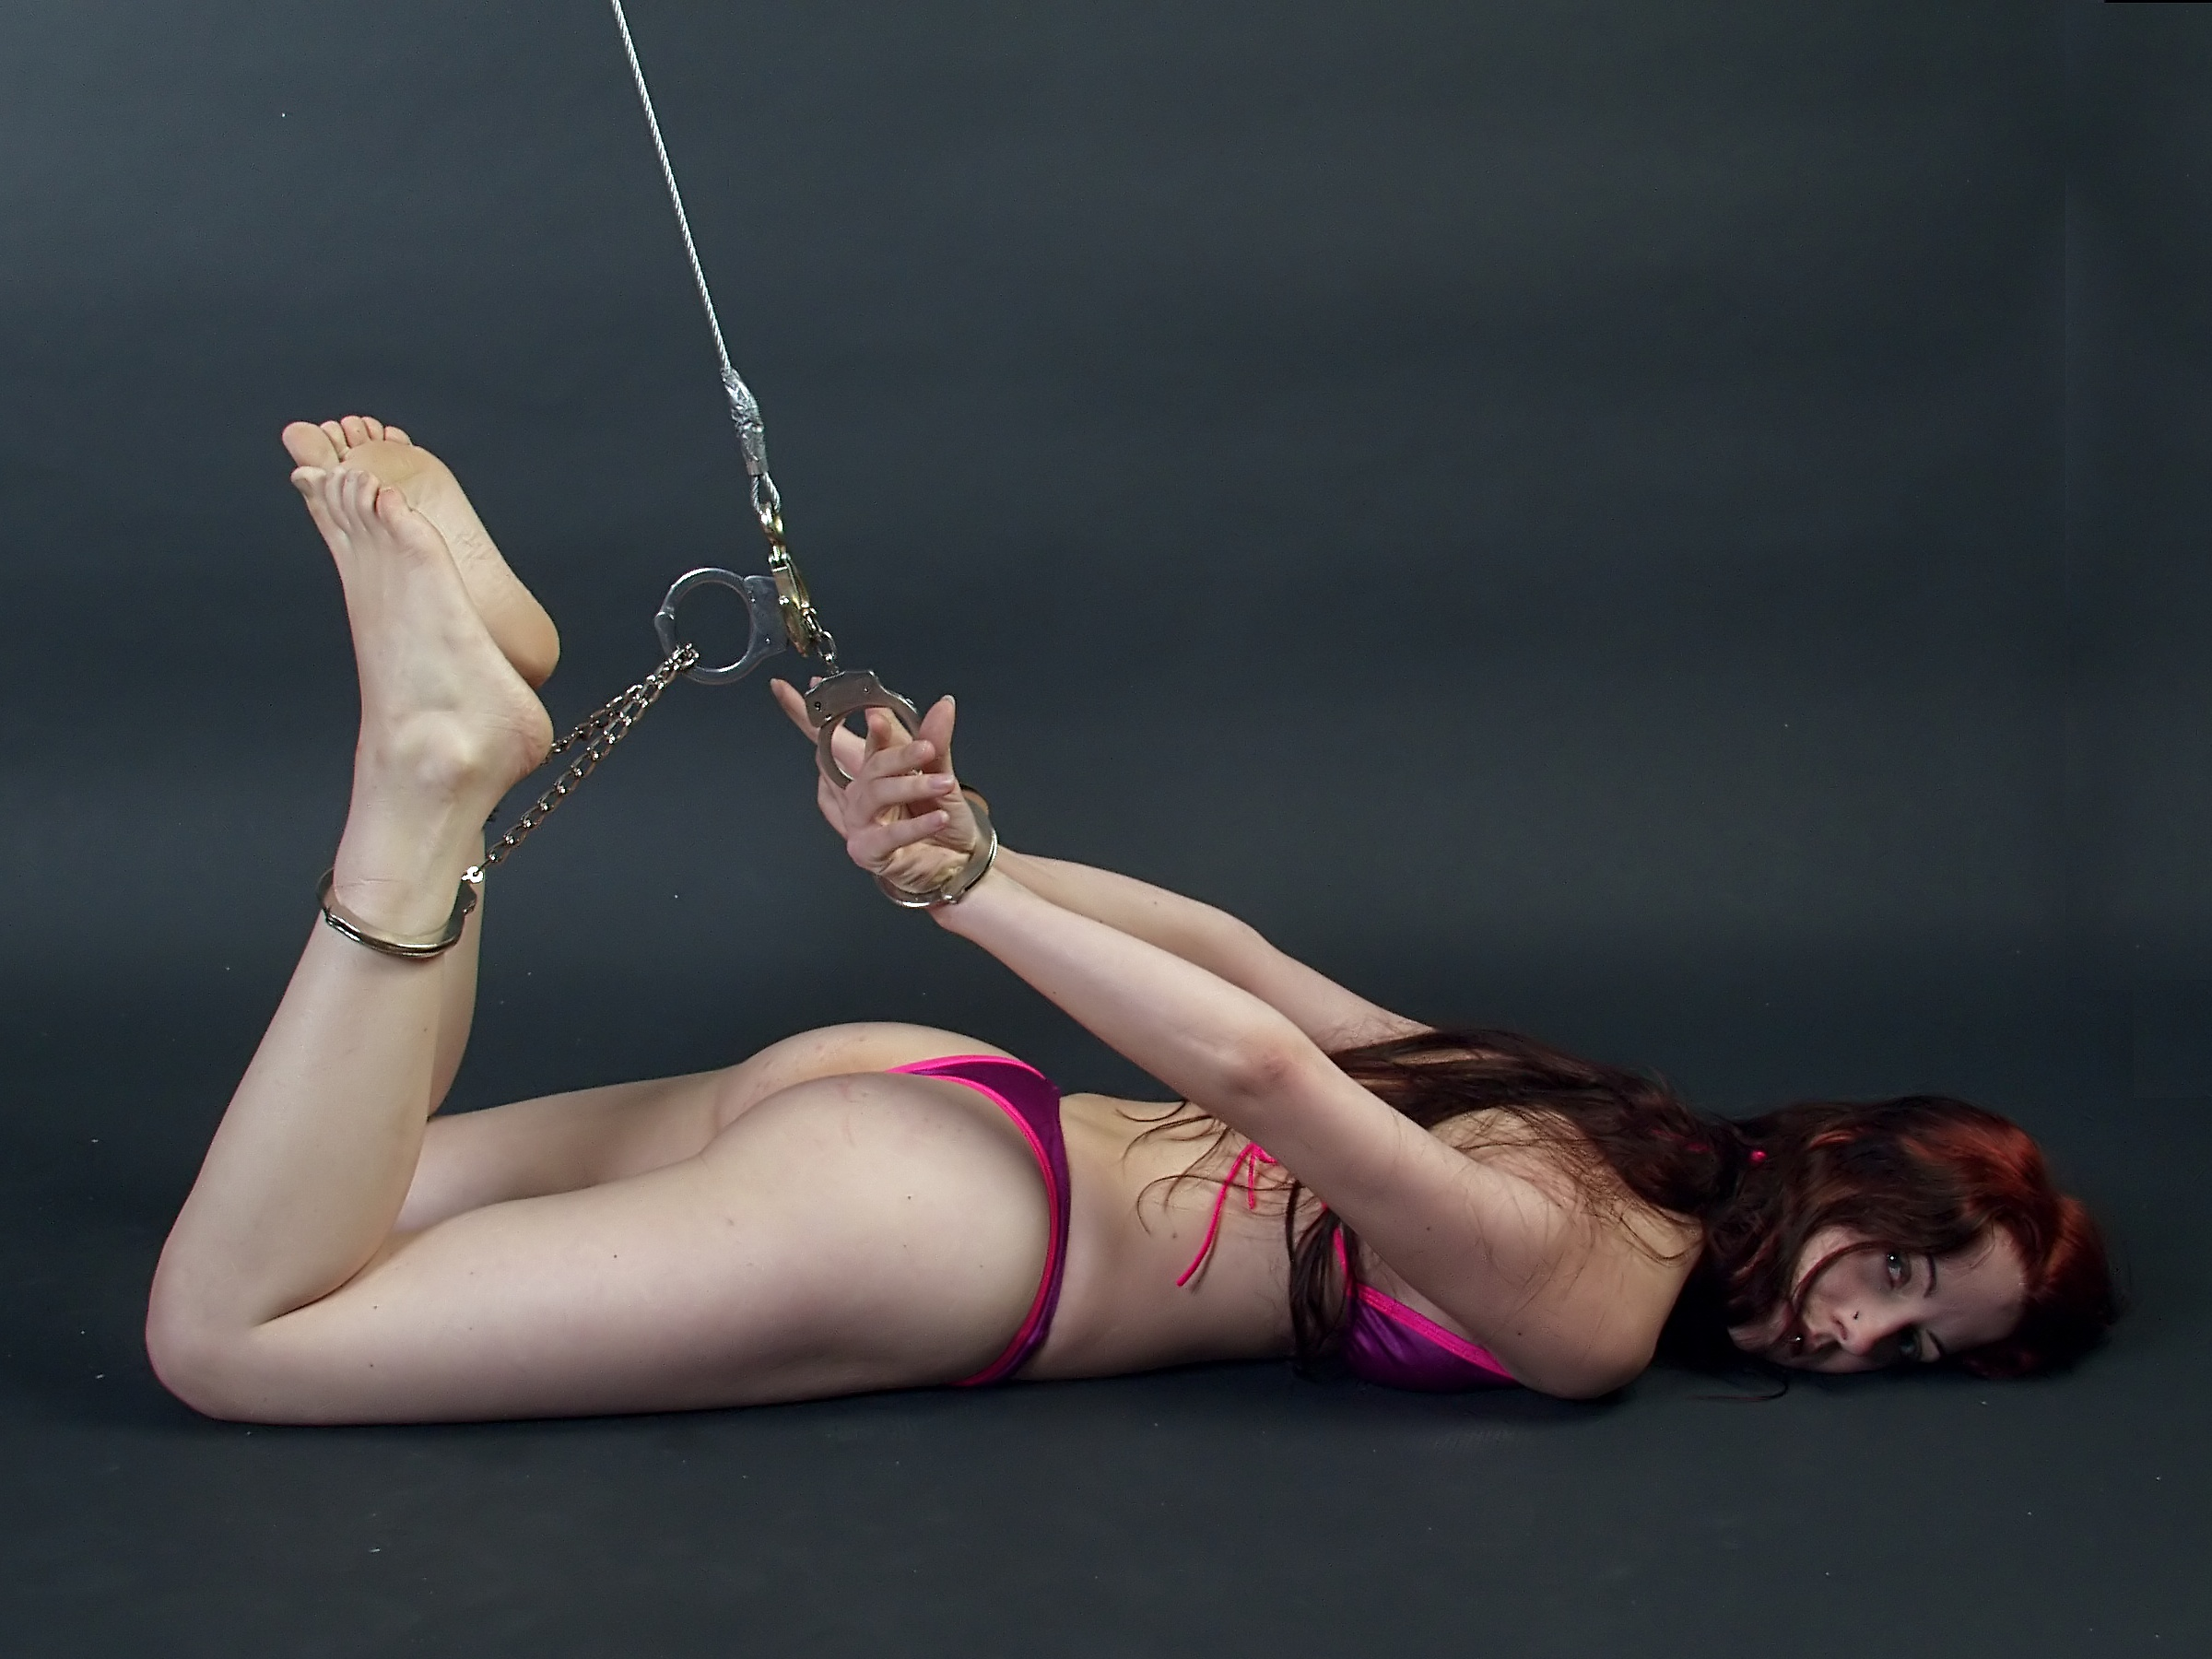 image Ballerina shibari selfbondage and suspension